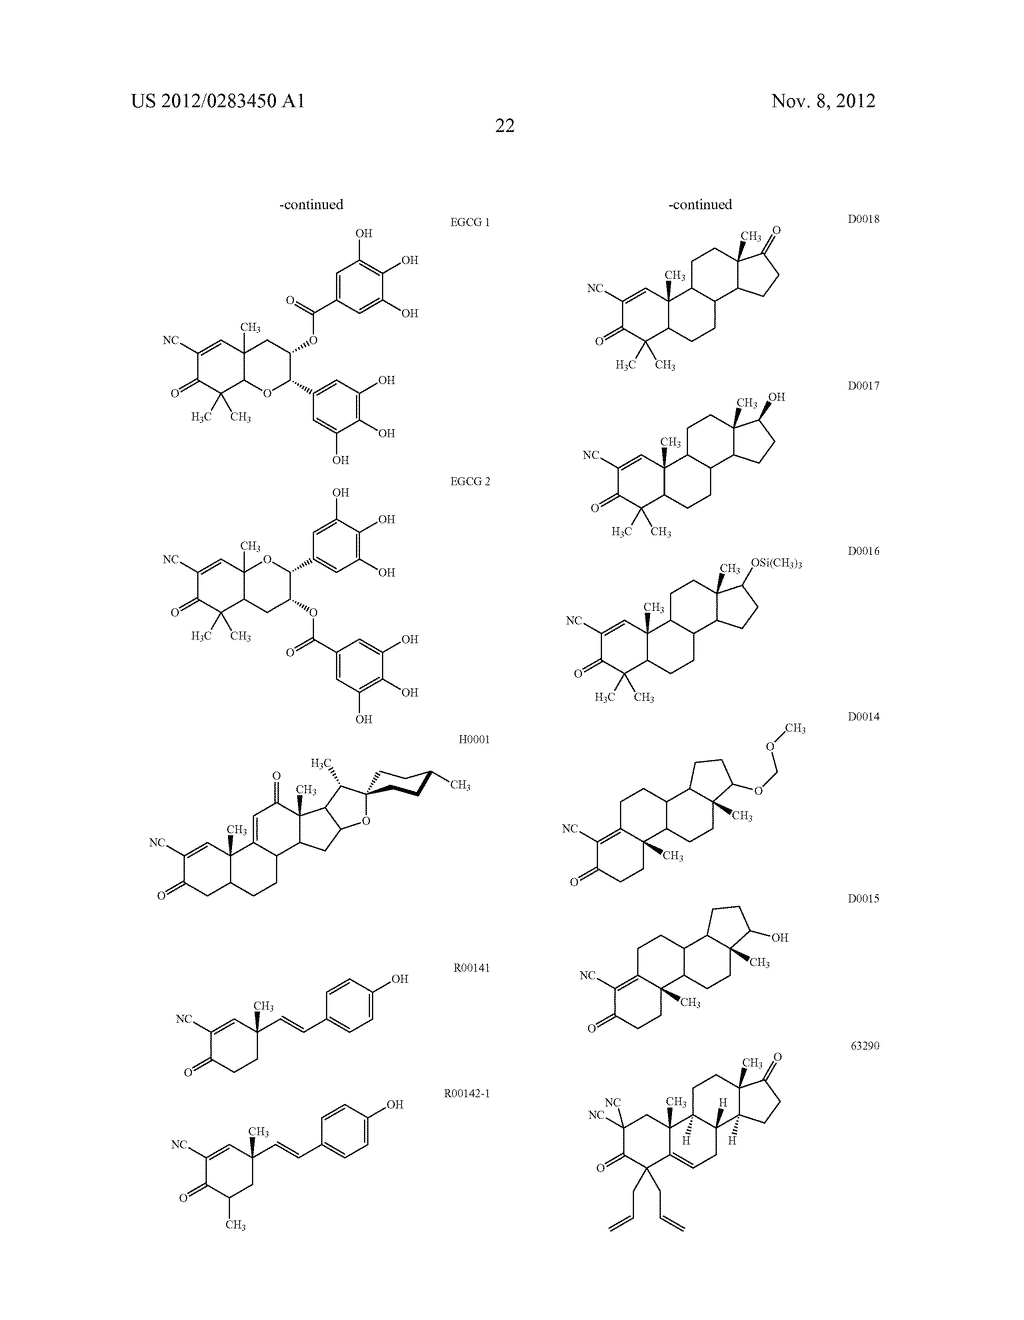 COMPOUNDS INCLUDING AN ANTI-INFLAMMATORY PHARMACORE AND METHODS OF USE - diagram, schematic, and image 47